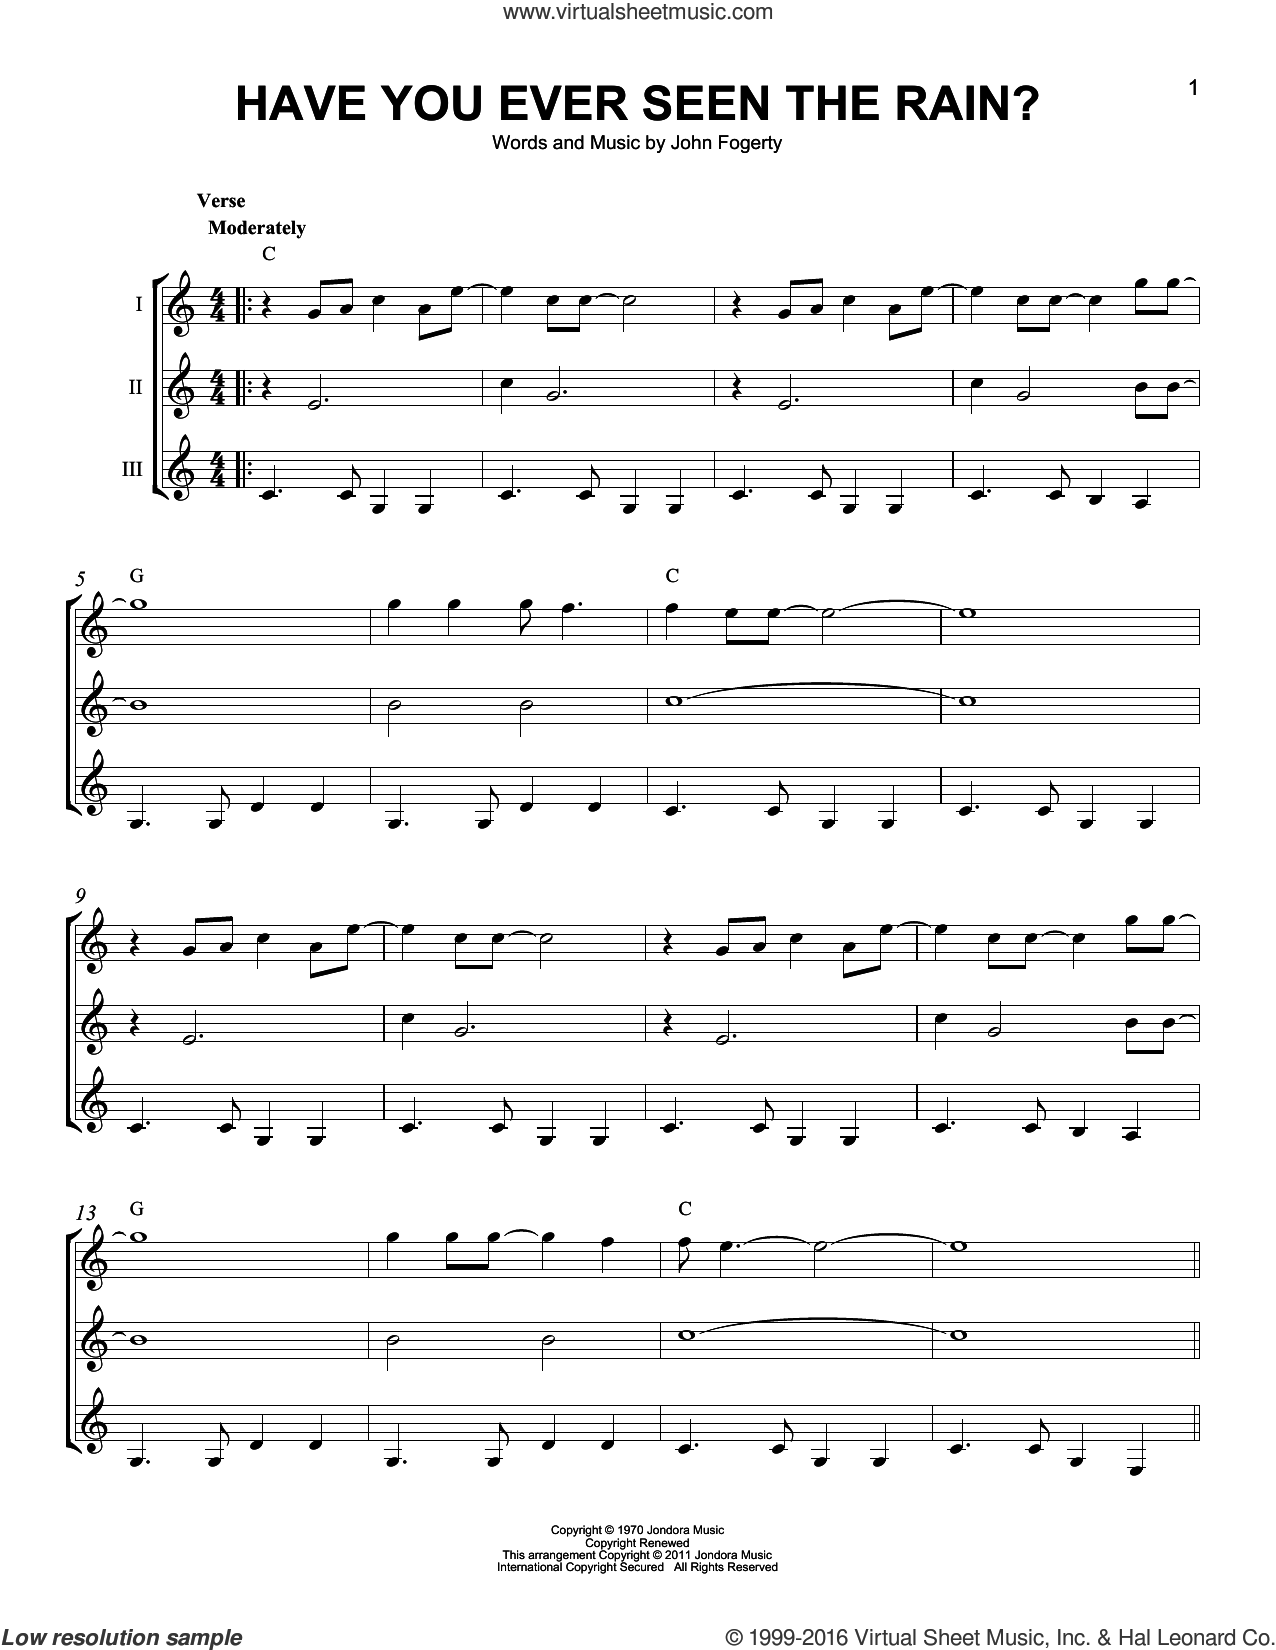 Have You Ever Seen The Rain? sheet music for guitar ensemble by Creedence Clearwater Revival and John Fogerty, intermediate skill level